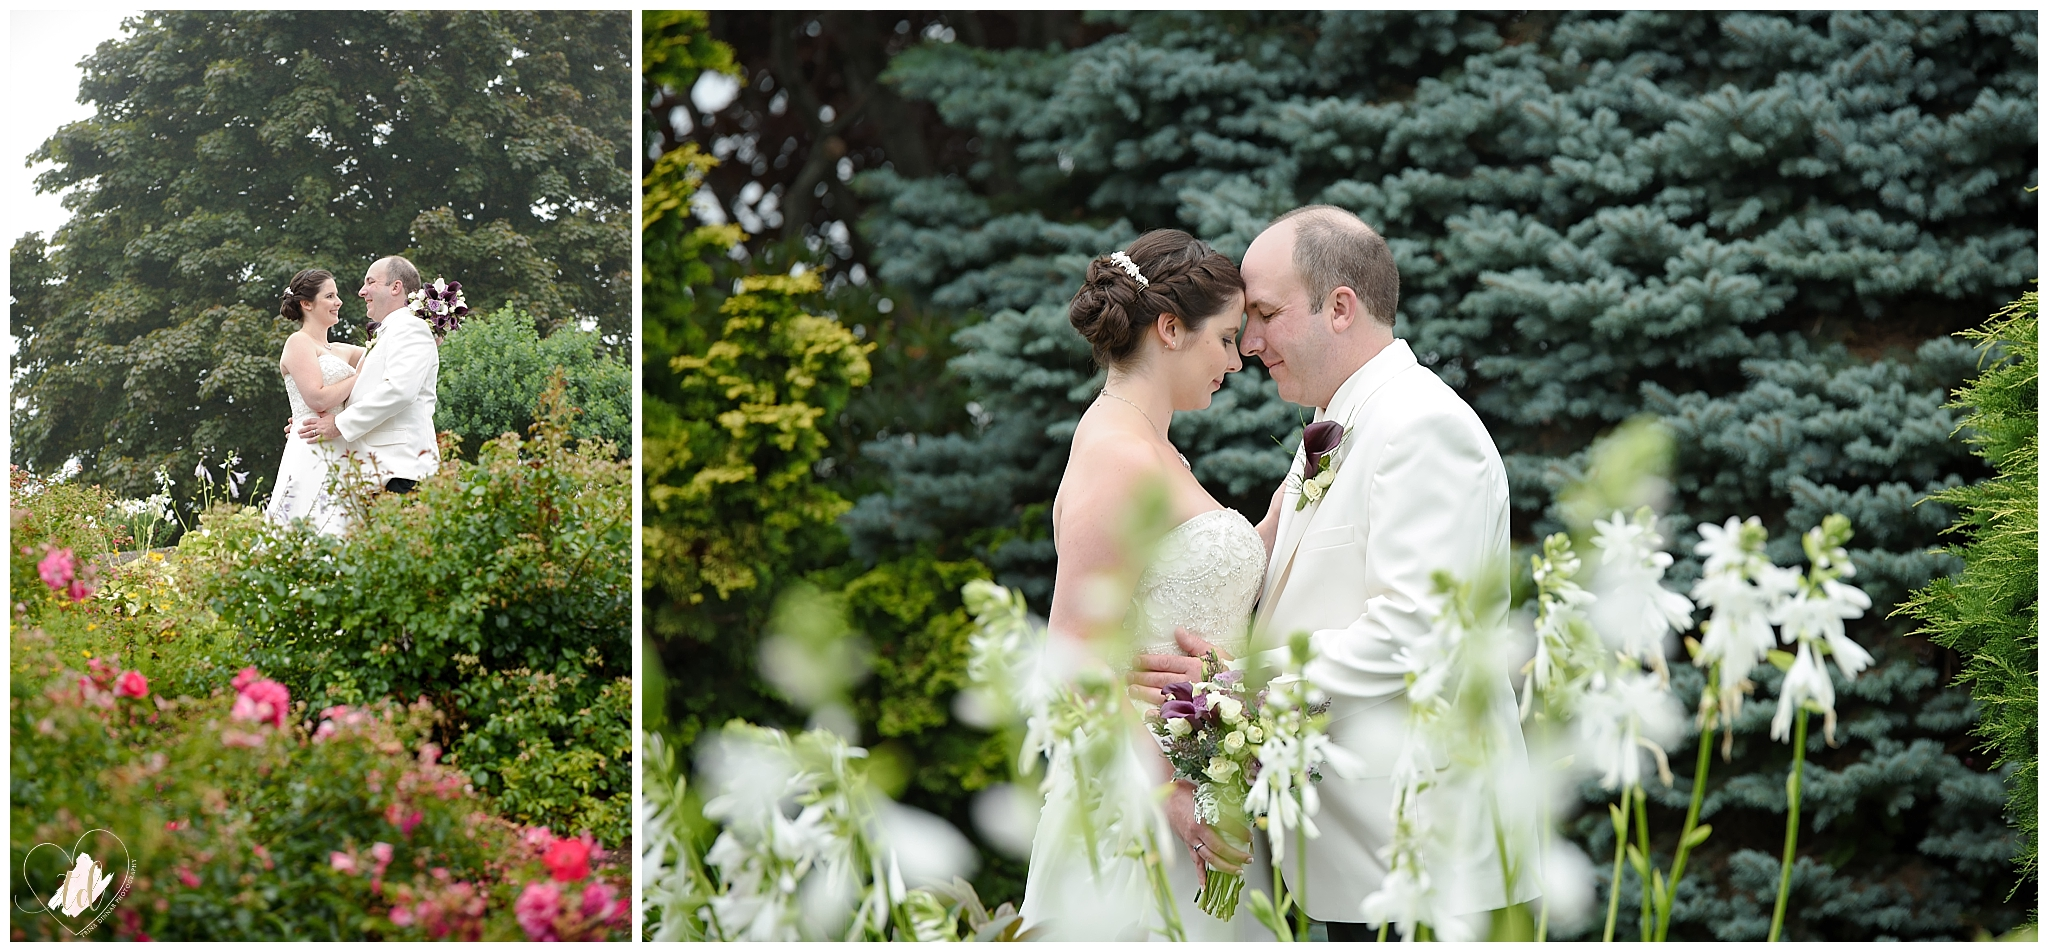 Bride and Groom portraits at the Samoset Resort after their Rockport, Maine wedding.